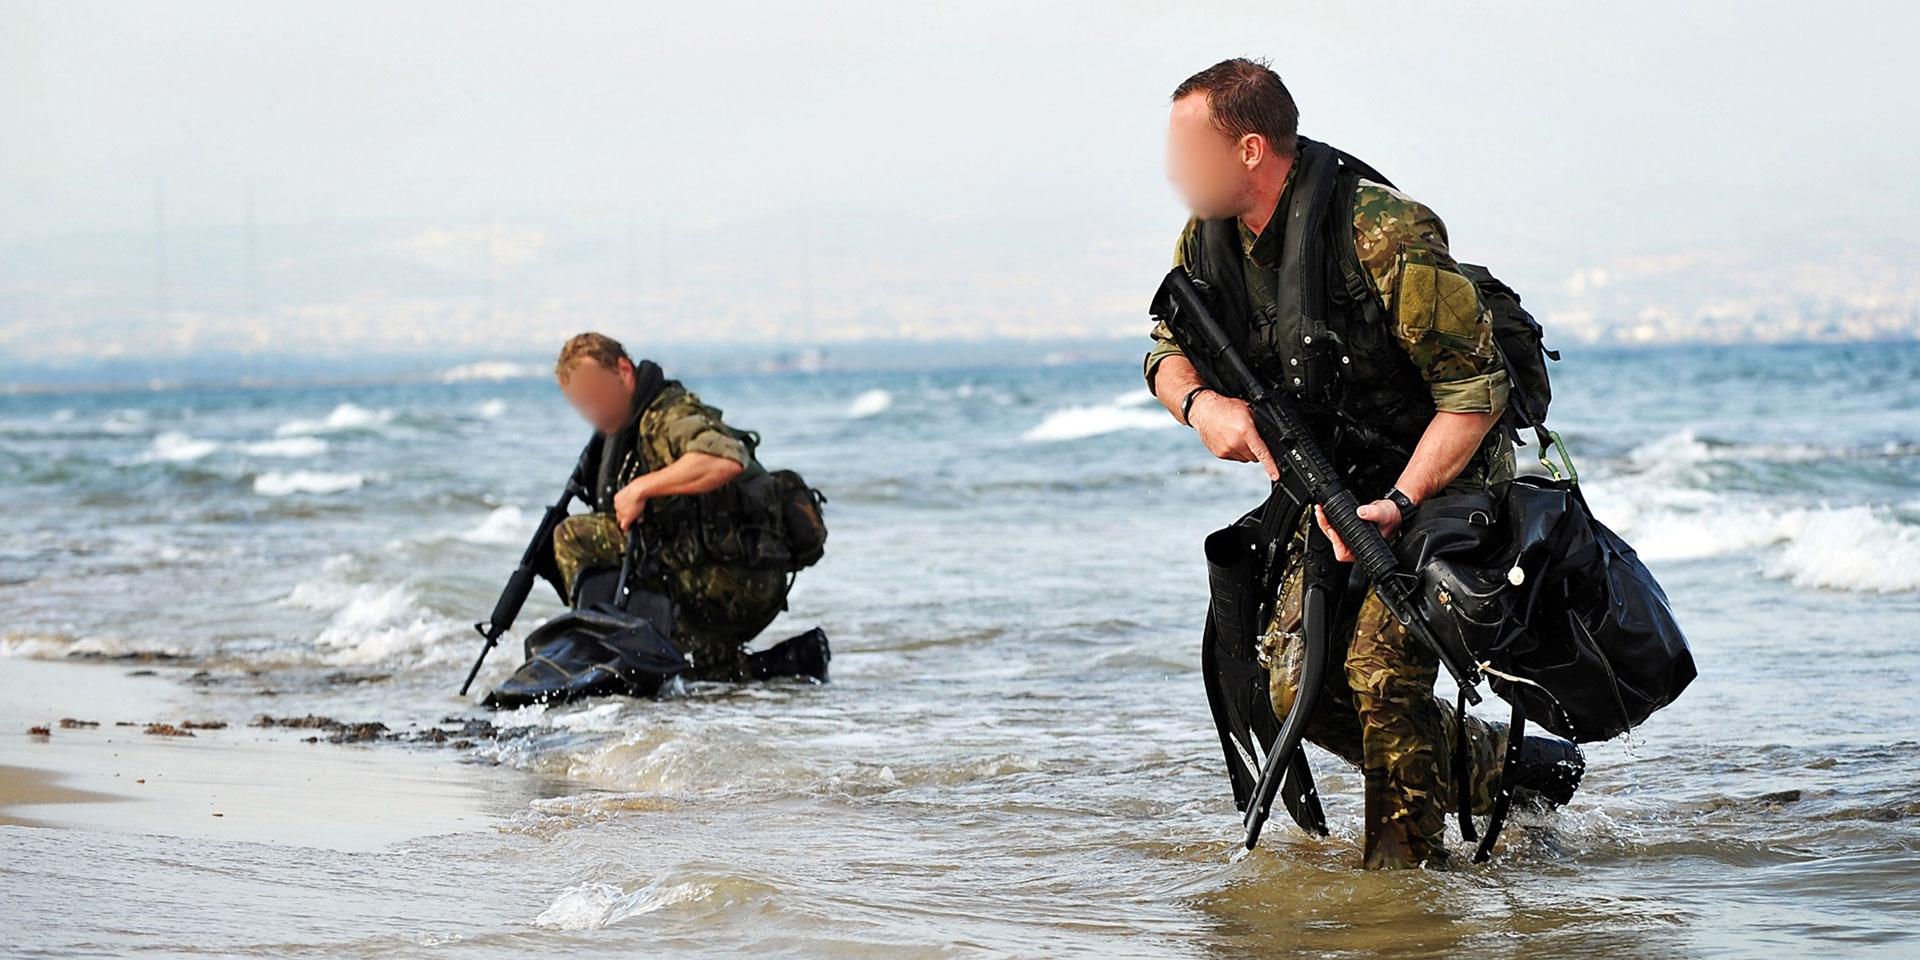 Two SBS Swimmer canoeists emerge from the sea with weapons ready, c2010